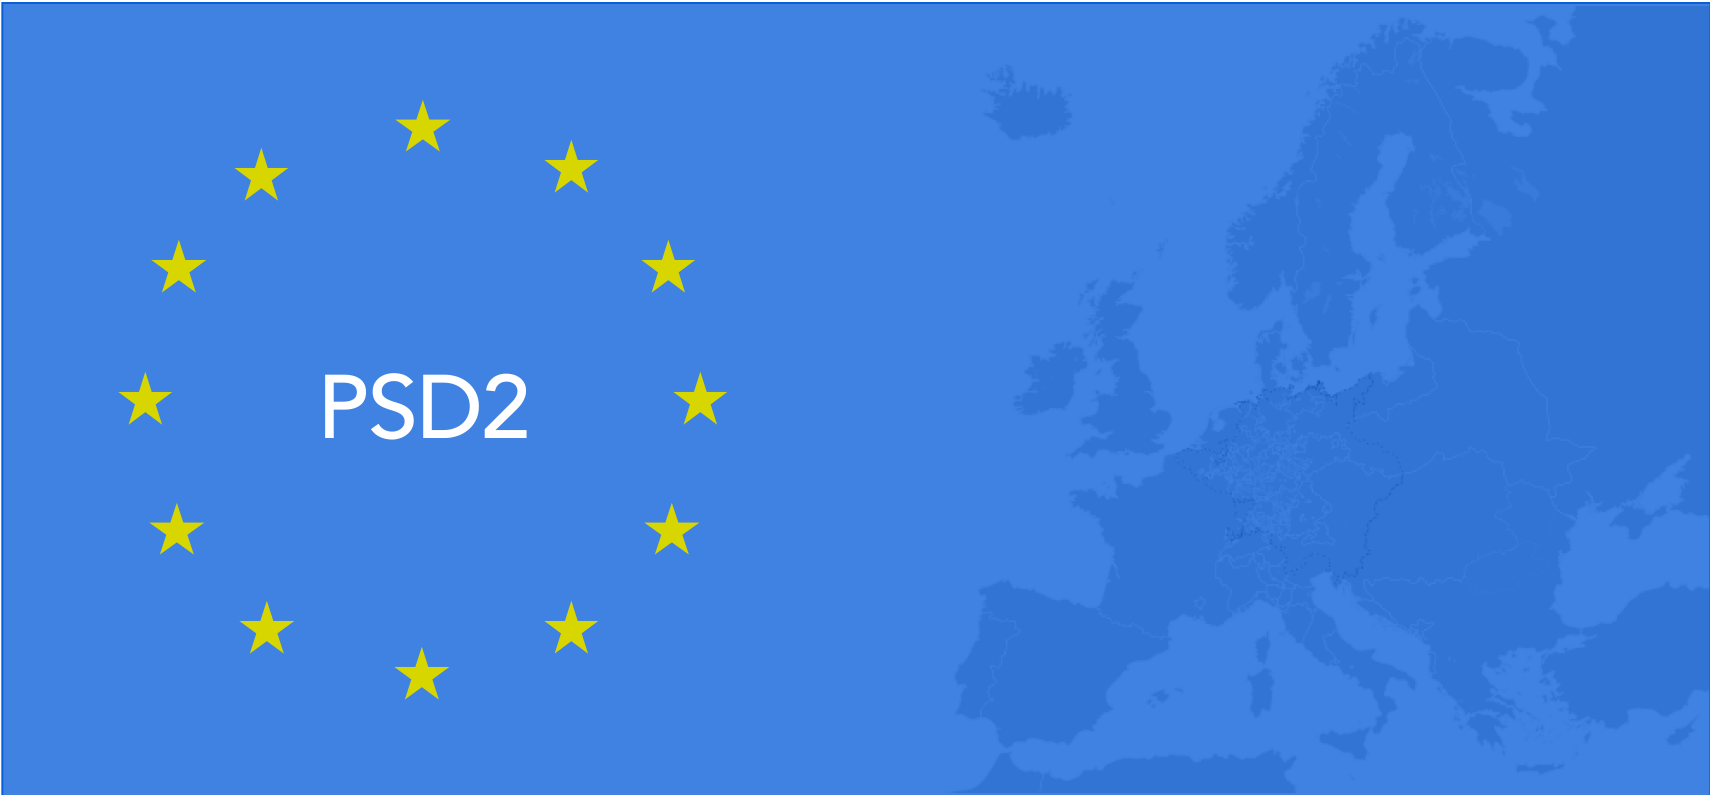 What Is PSD2?